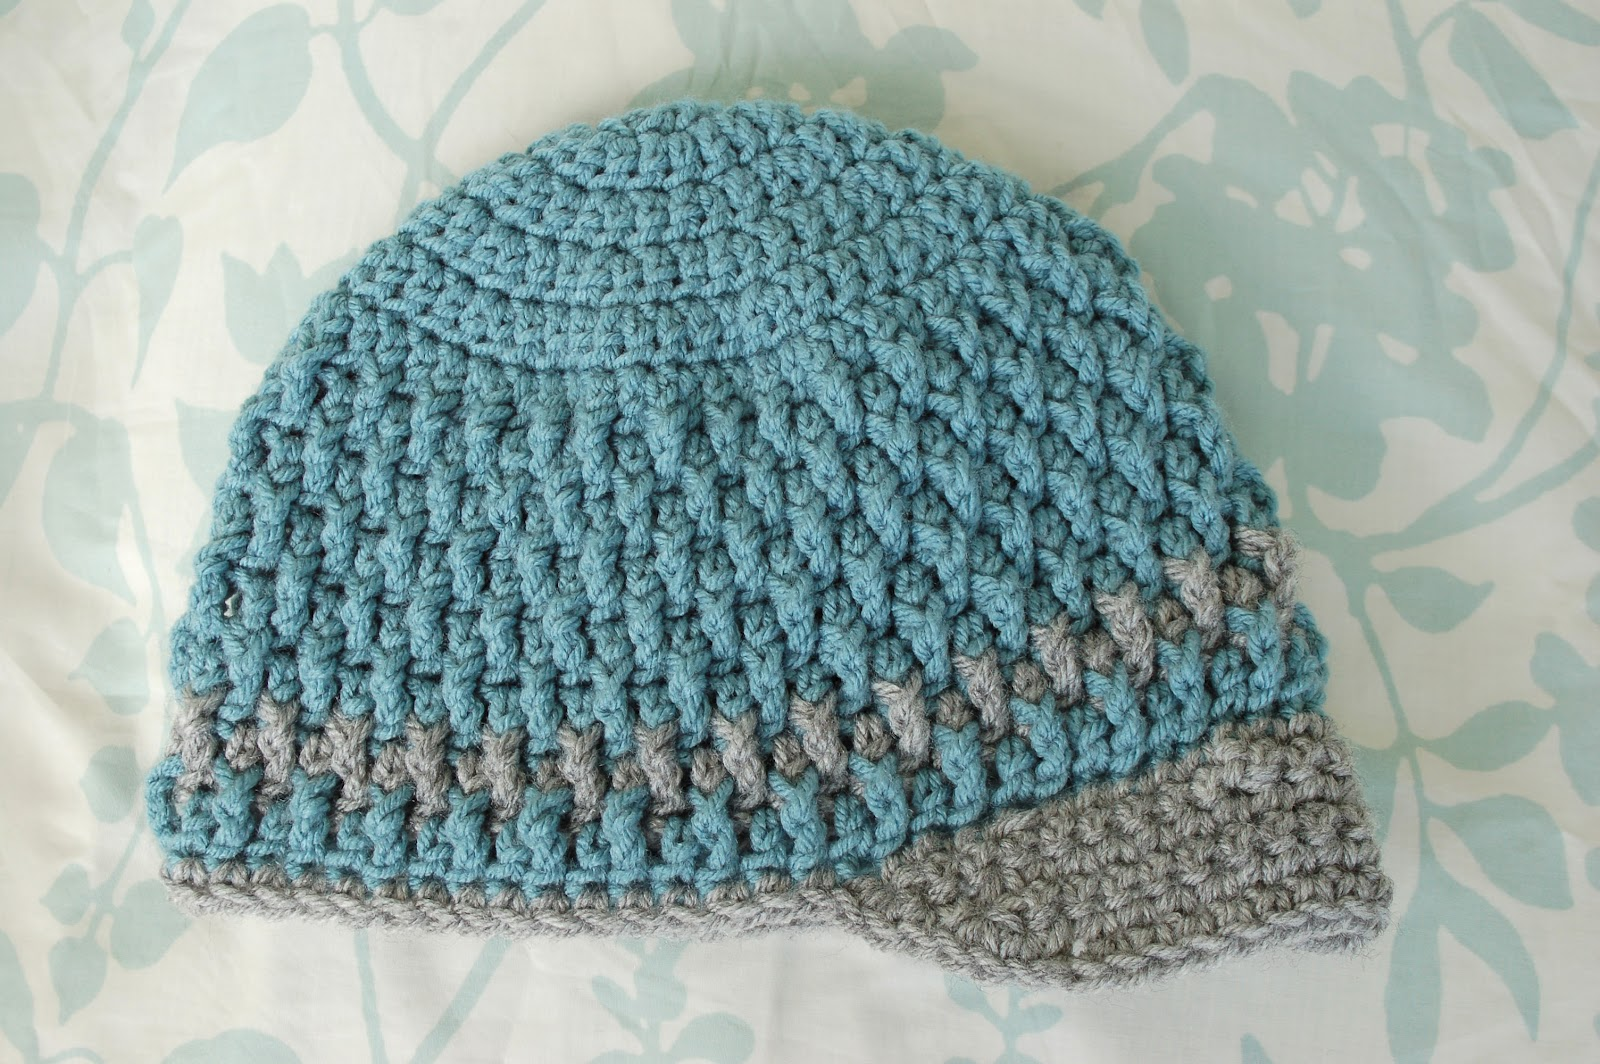 Free Crochet Patterns For Newborn Baby Hats : Alli Crafts: Free Pattern: Deeply Textured Hat - Toddler